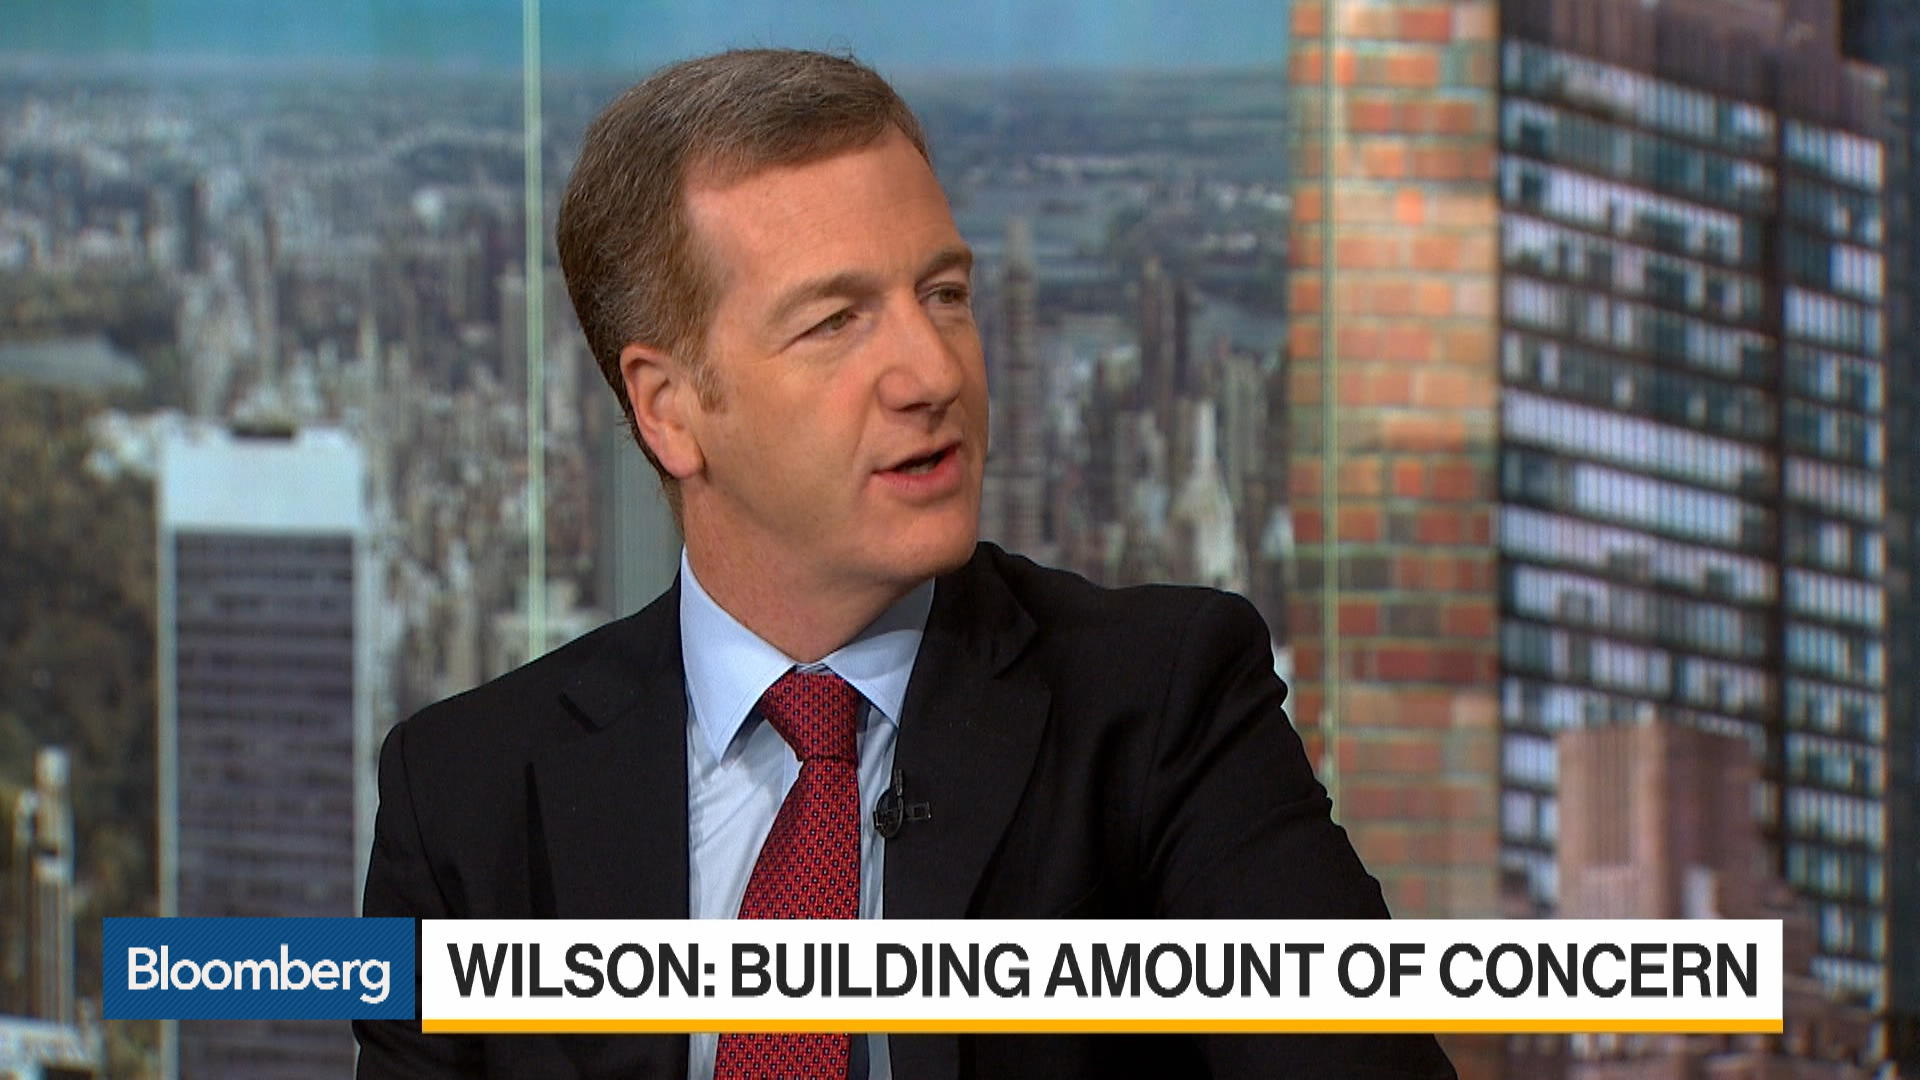 Economy; Auto Sales Show the Consumer May Be Fading: Morgan Stanley's Wilson